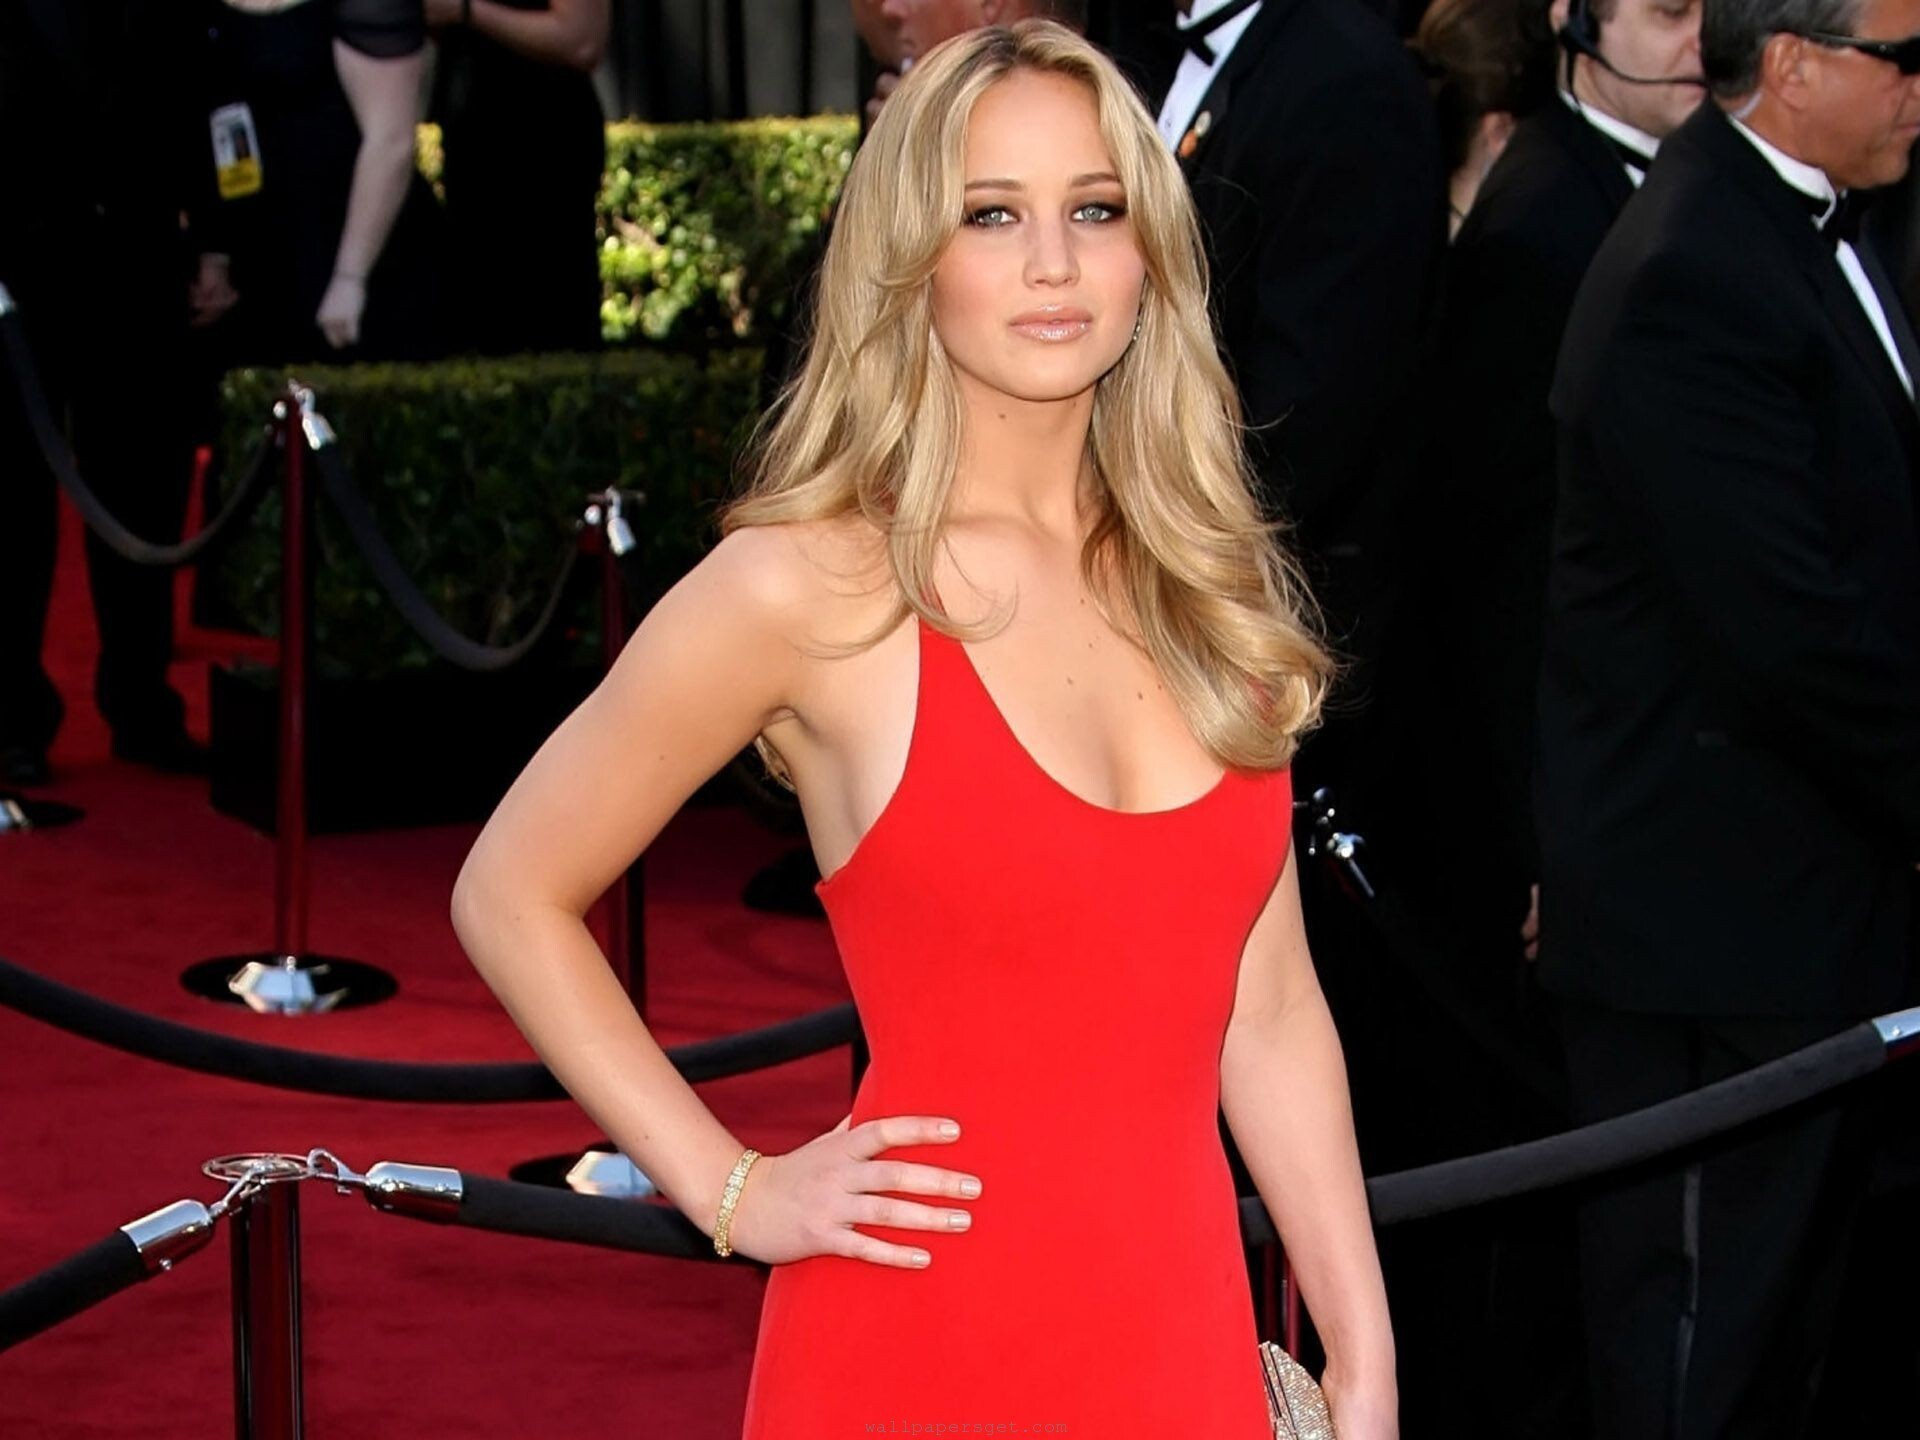 http://www.hdnicewallpapers.com/Walls/Big/Jennifer%20Lawrence/Beautiful_Jennifer_Lawrence_in_Red_Dress.jpg